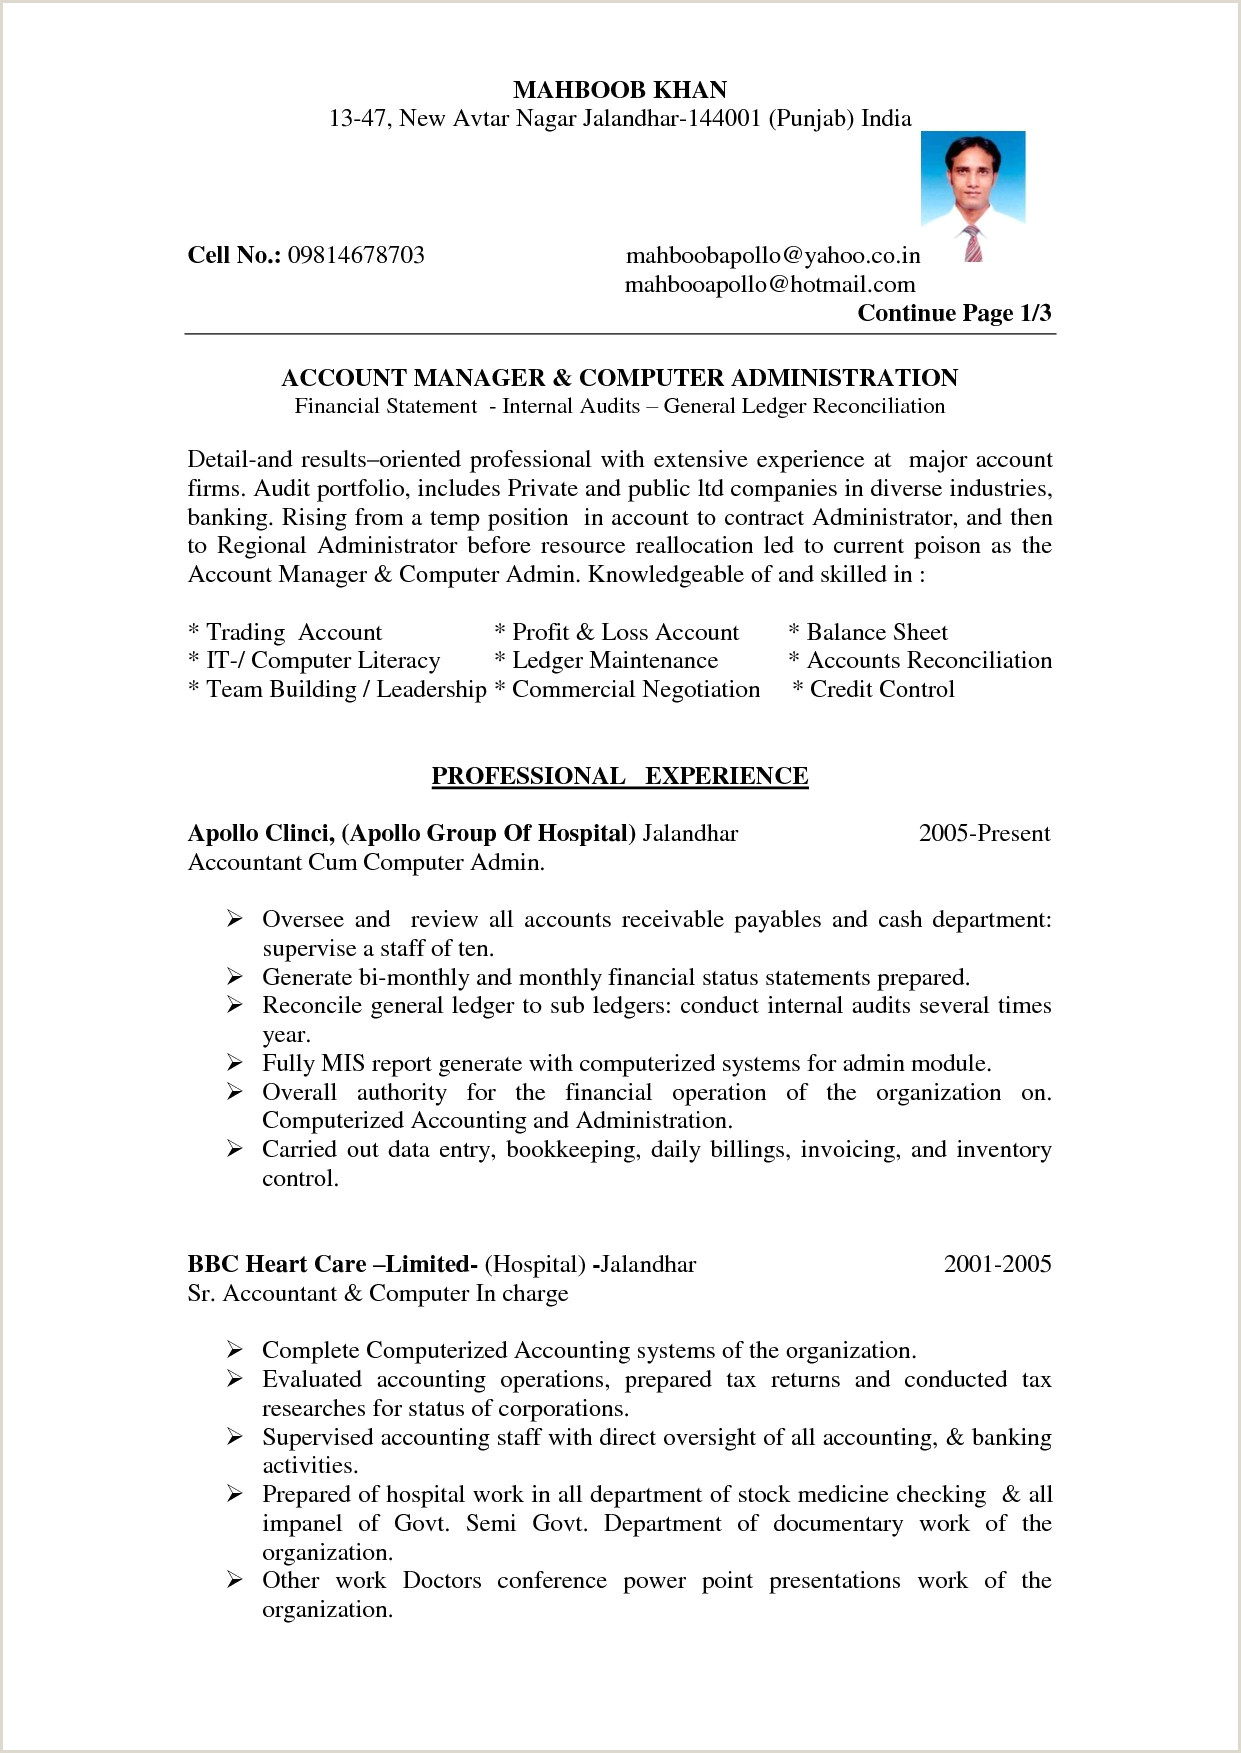 Mca Fresher Cv Format Free Download Resume Samples Free Download Templates Cv Pdf For Freshers